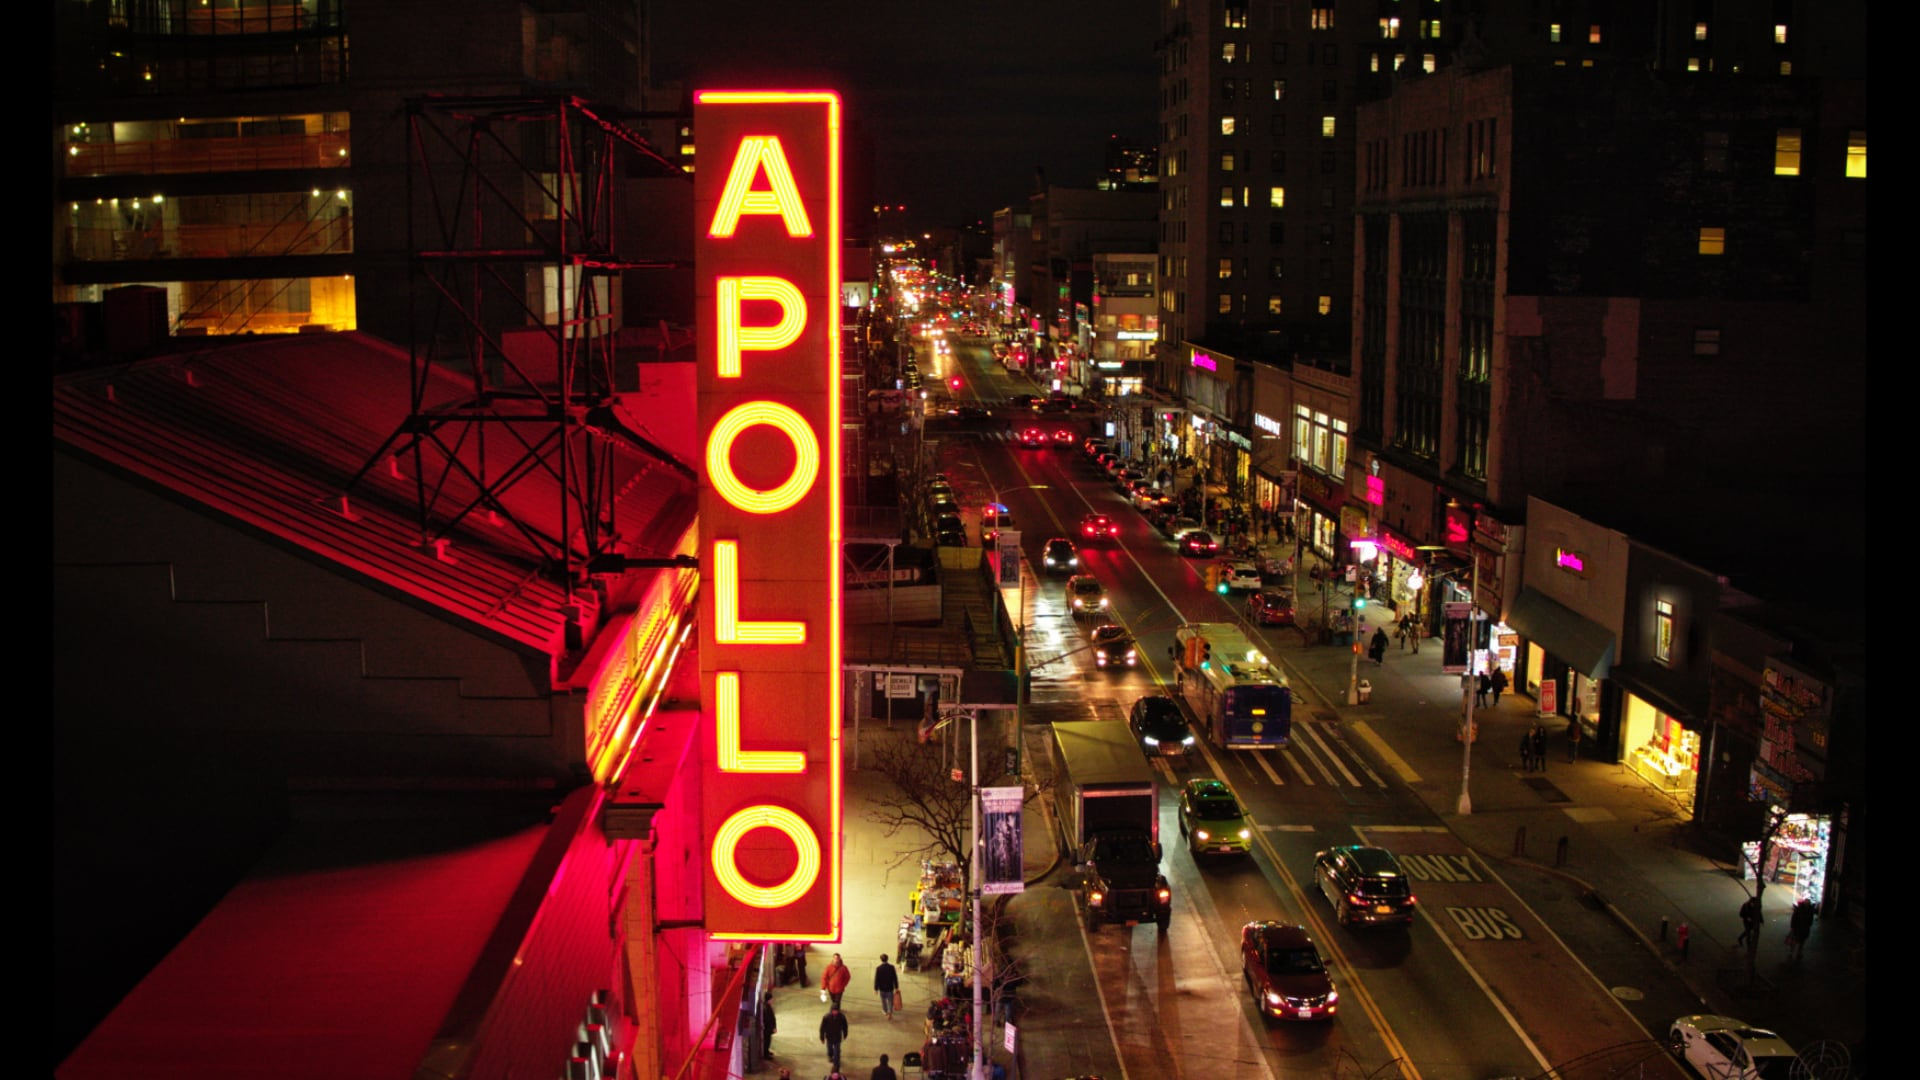 The Apollo Tribeca thegrio.com